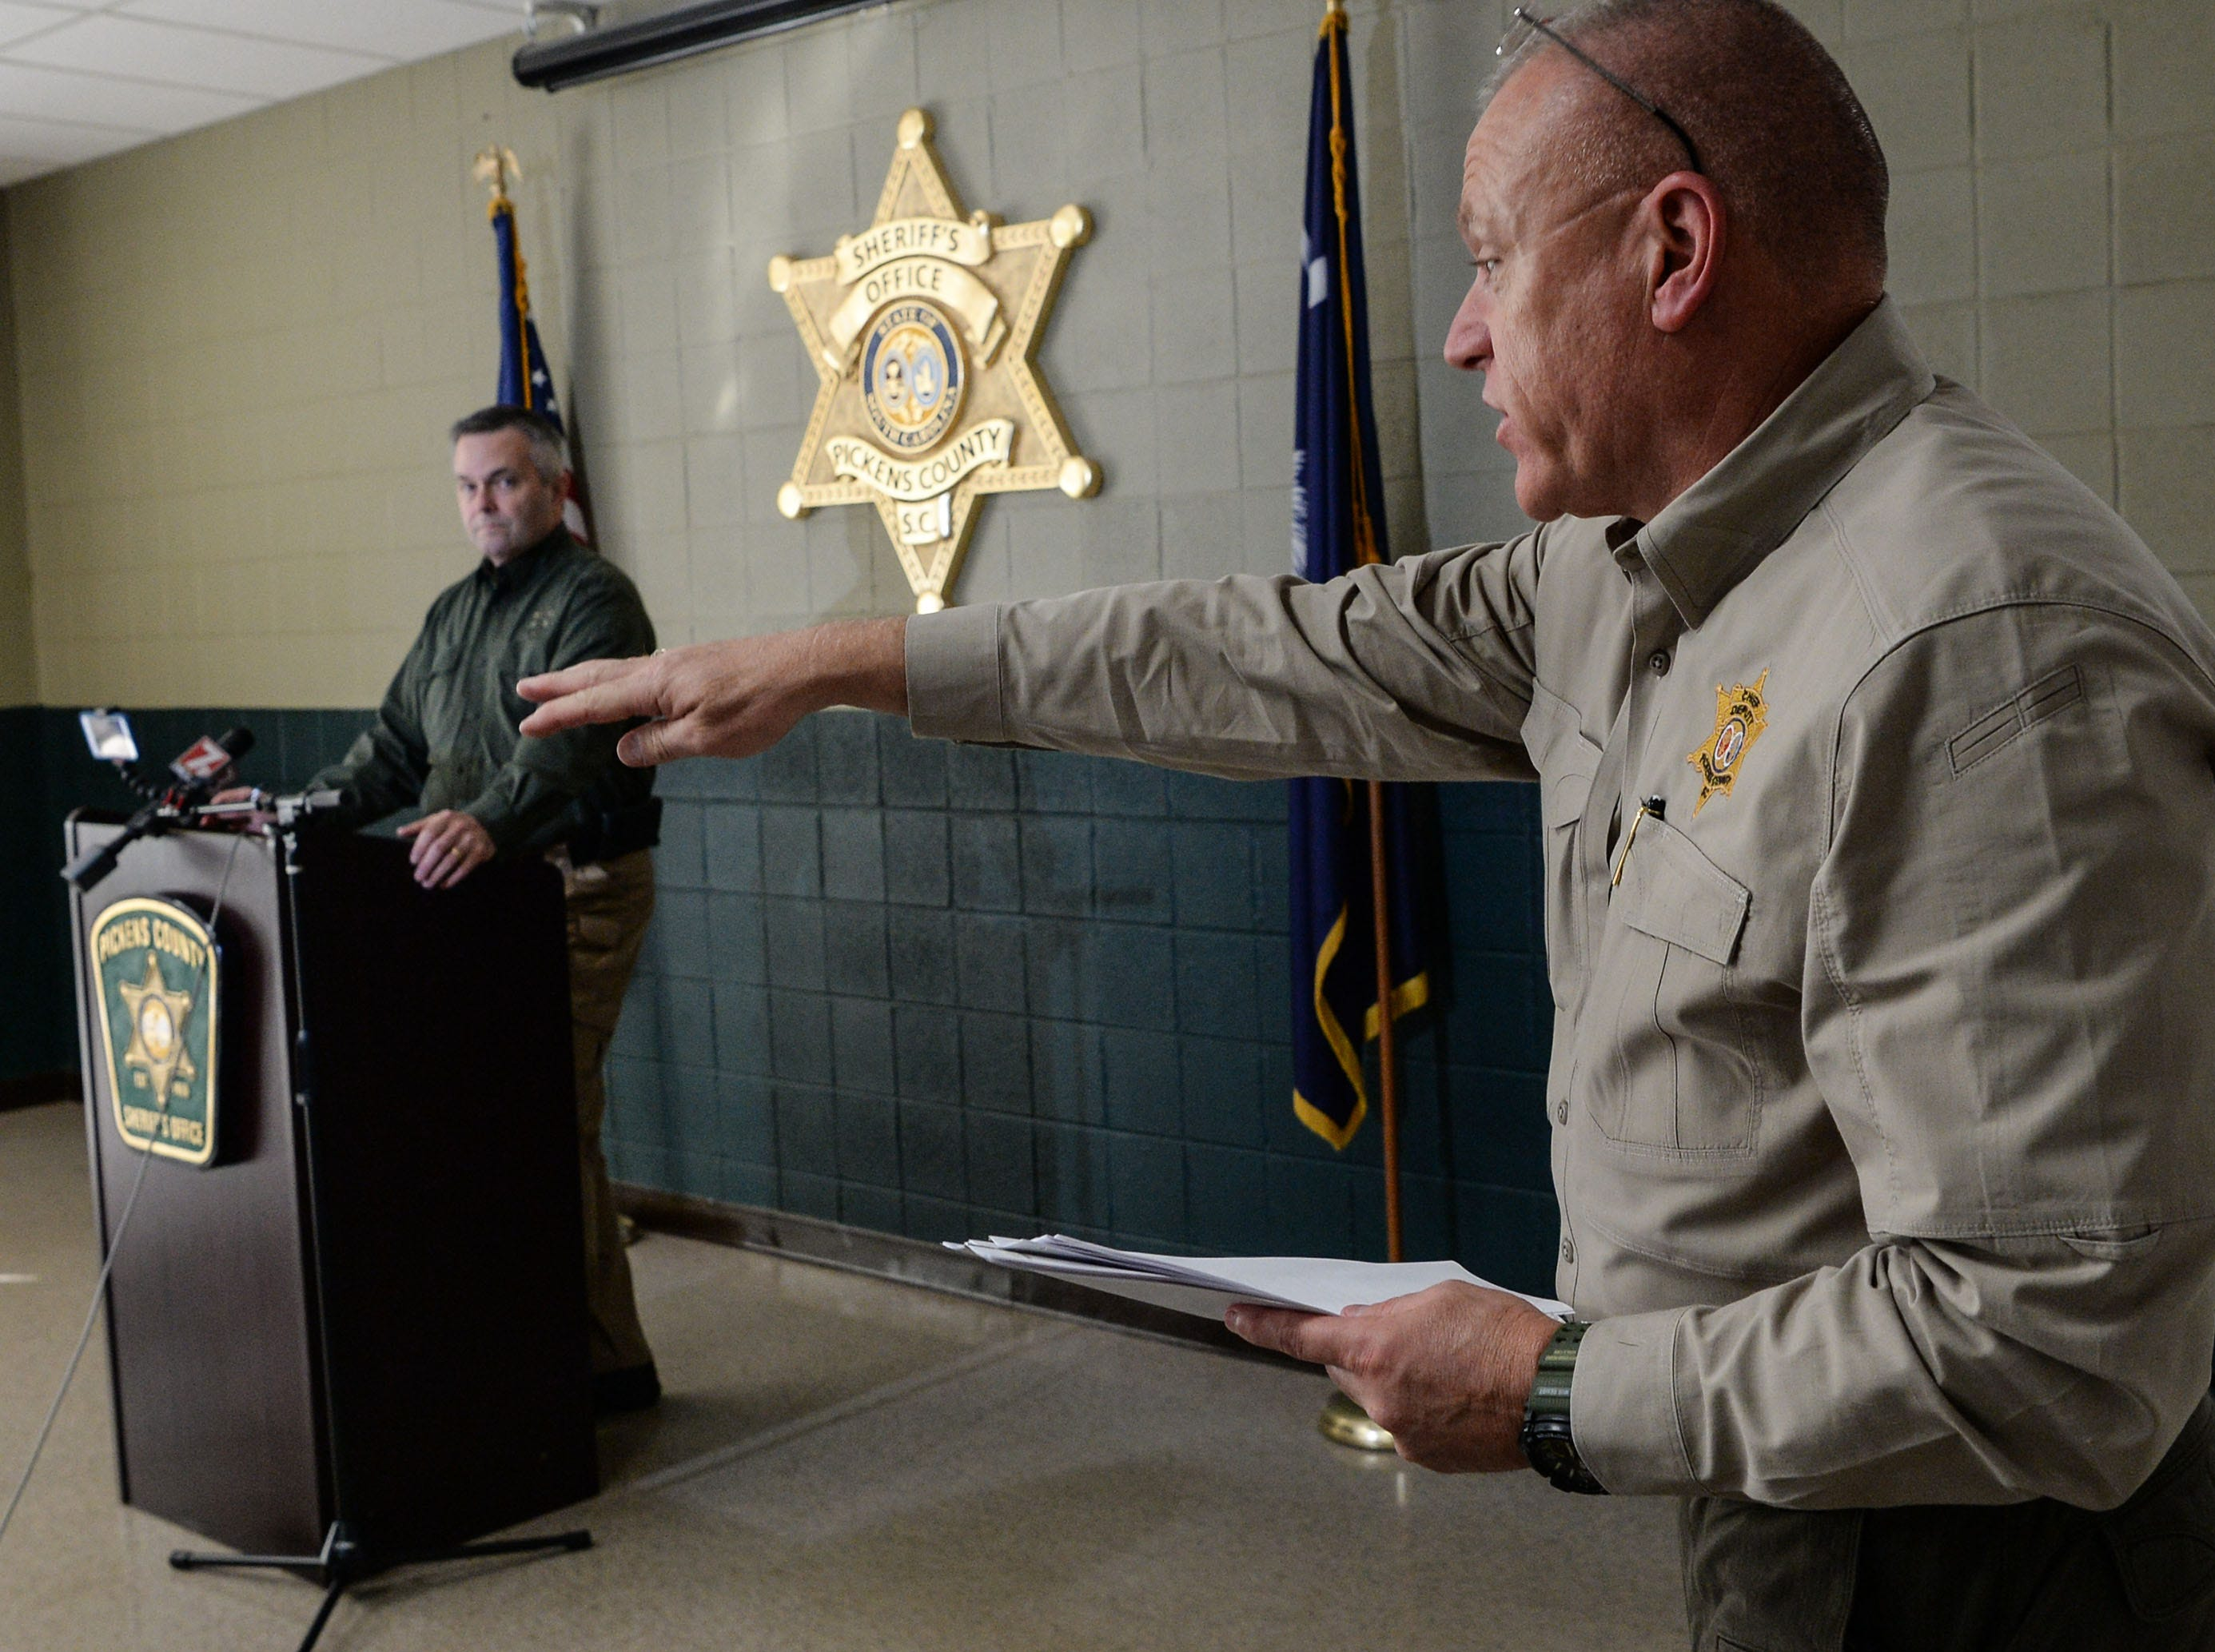 Pickens County Sheriff Office Chief Deputy Creed Hashe explains a detail between Sheriff Rick Clark speaking to media after two inmates escaped from the Pickens County Detention Center early Tuesday morning.